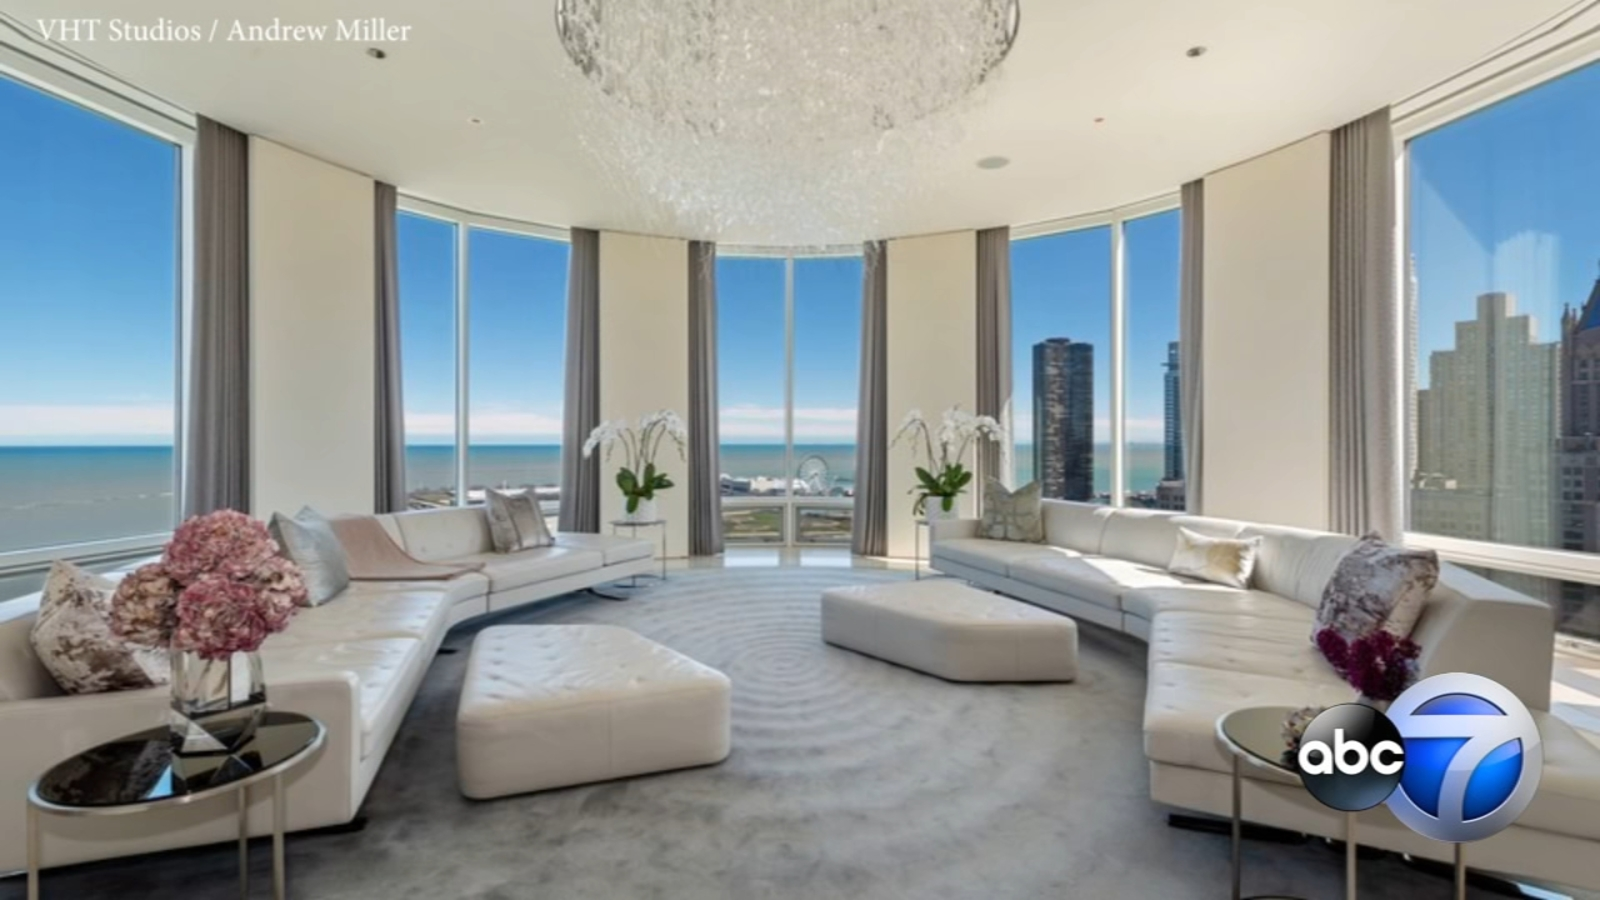 Chicago dream home: Stunning Lake Shore Drive condo listed for $13.5M